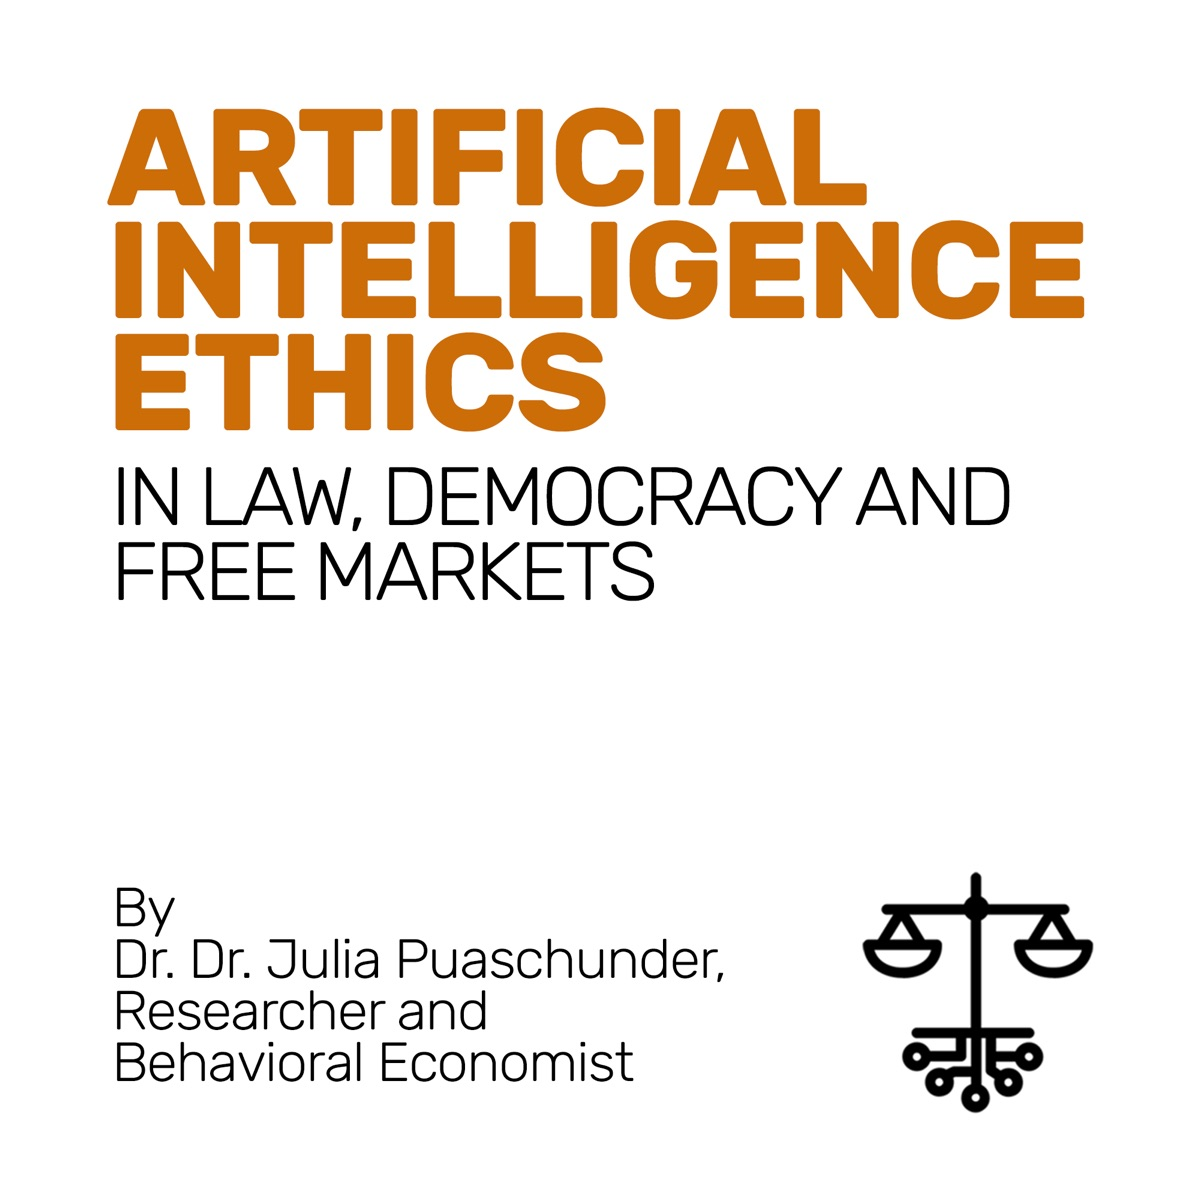 Artificial Intelligence Ethics, by Dr. Dr. Julia Puaschunder